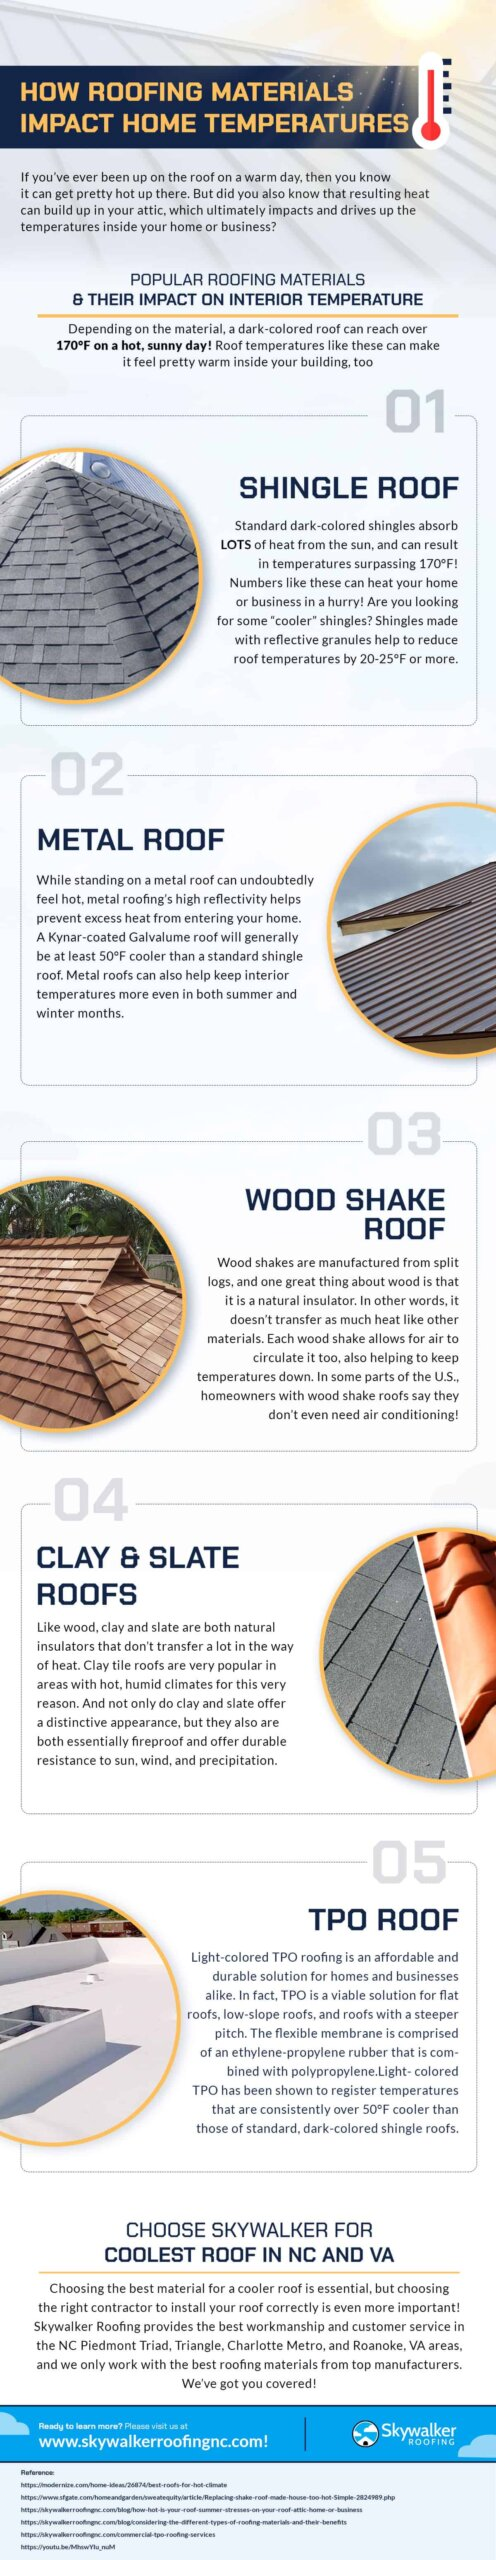 How-Roofing-Material-Impacts-Home-Temperatures